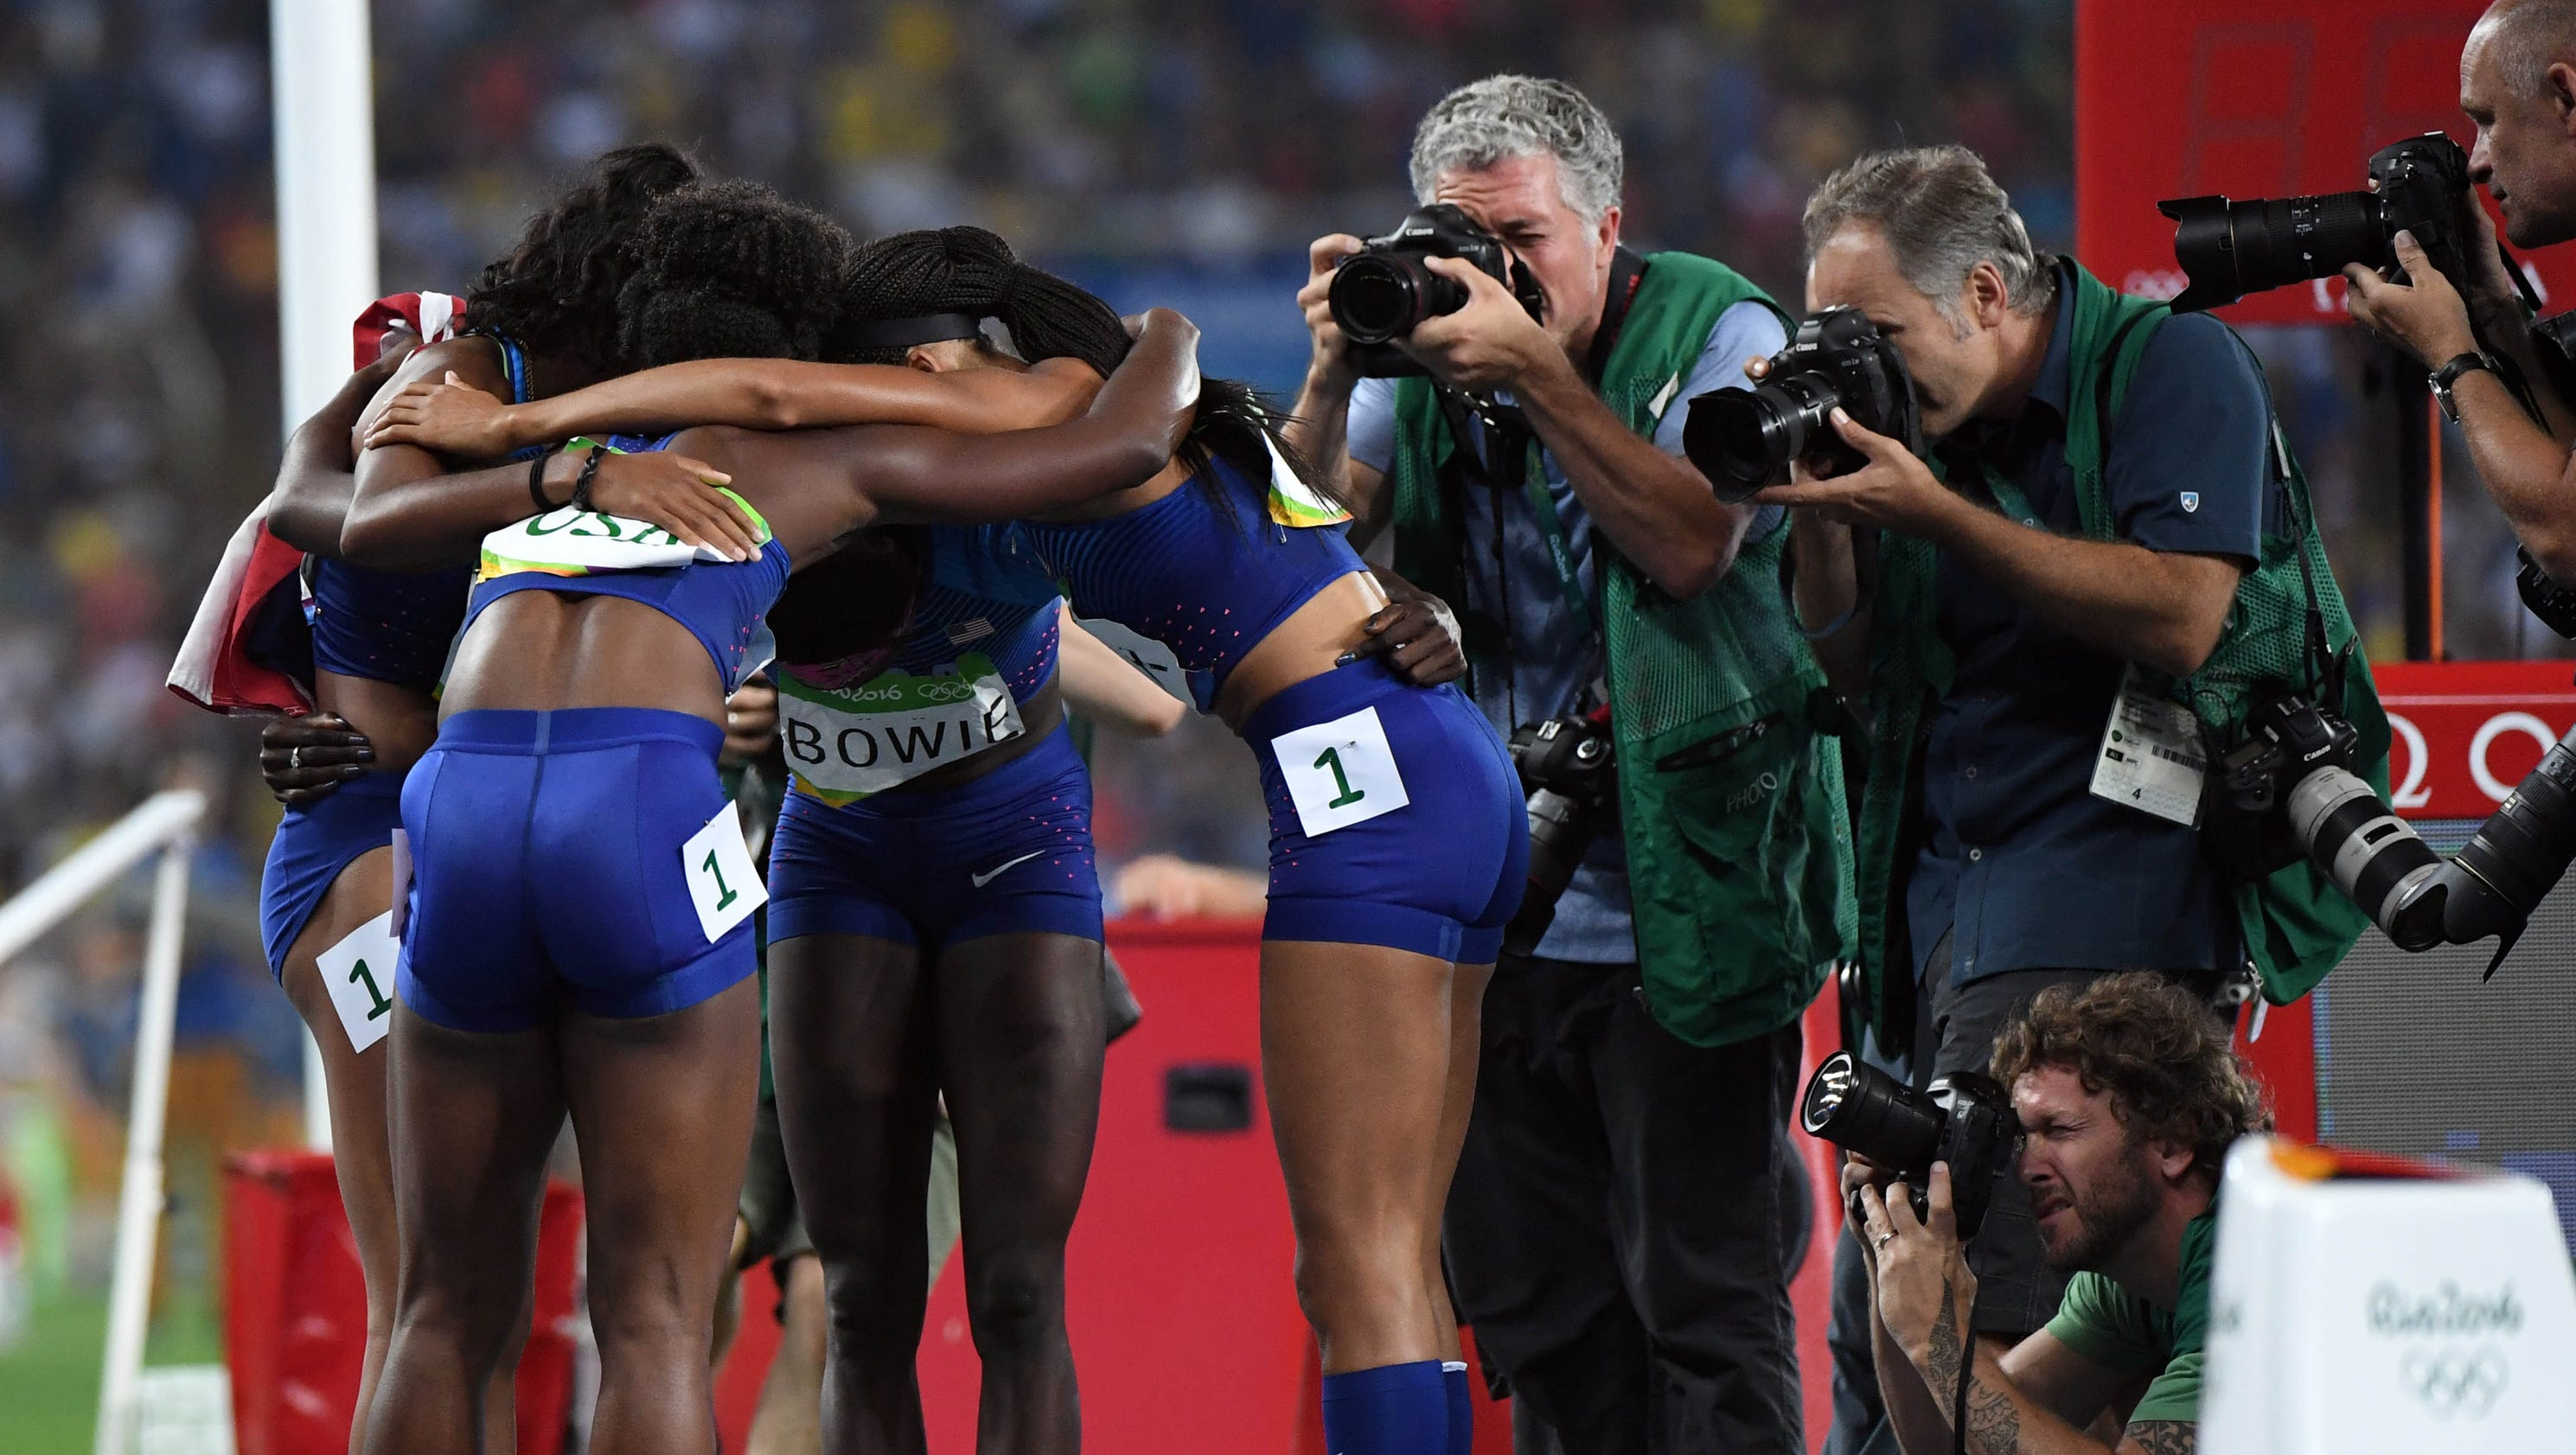 636072389556175680-usp-olympics-track-and-field-evening-session-84552608